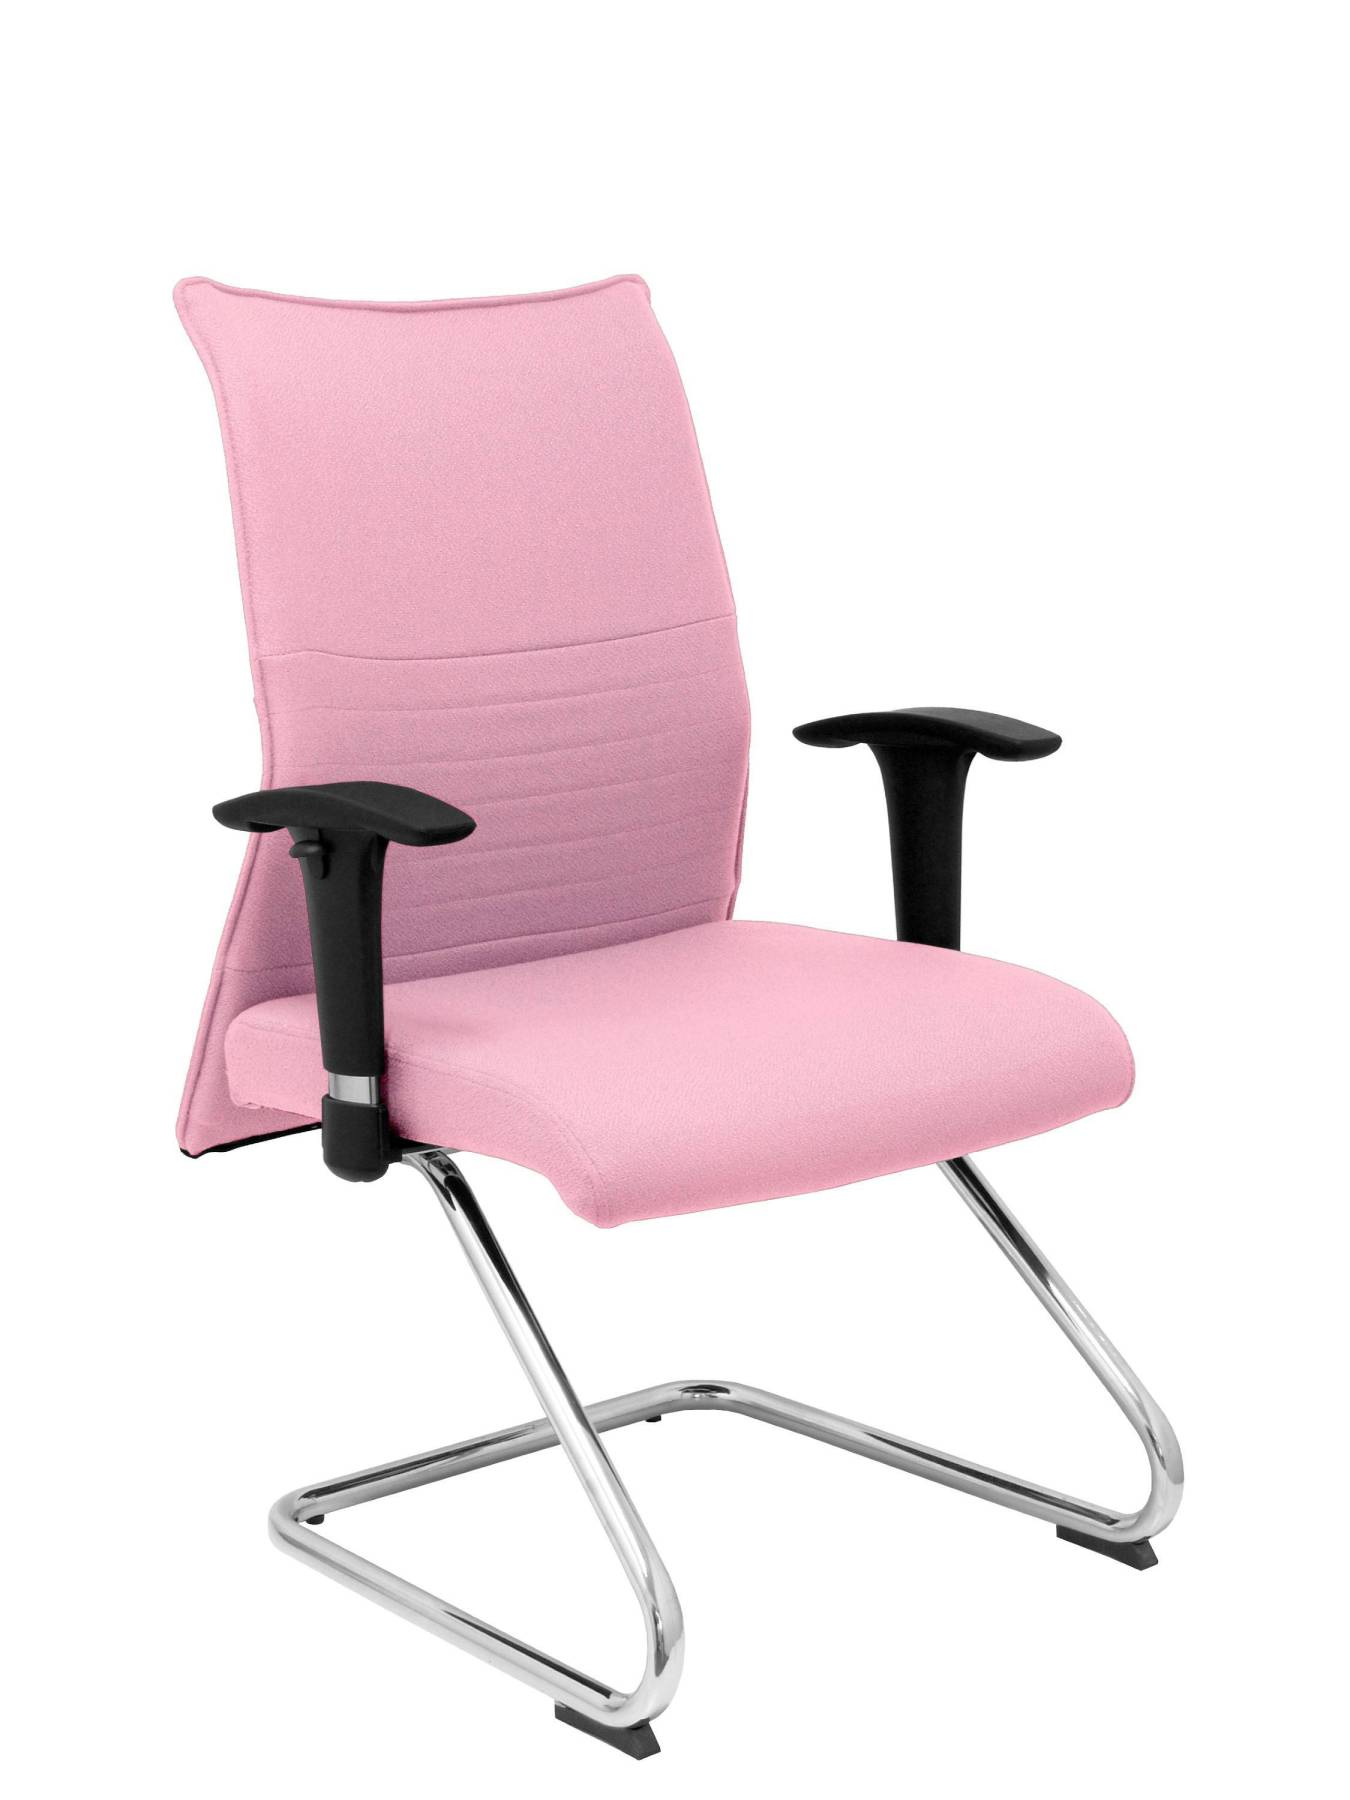 Armchair confidante Ergonomic for visits with skate Chrome up seat and backstop upholstered in BALI tissue pink Colour P|Office Chairs| |  - title=